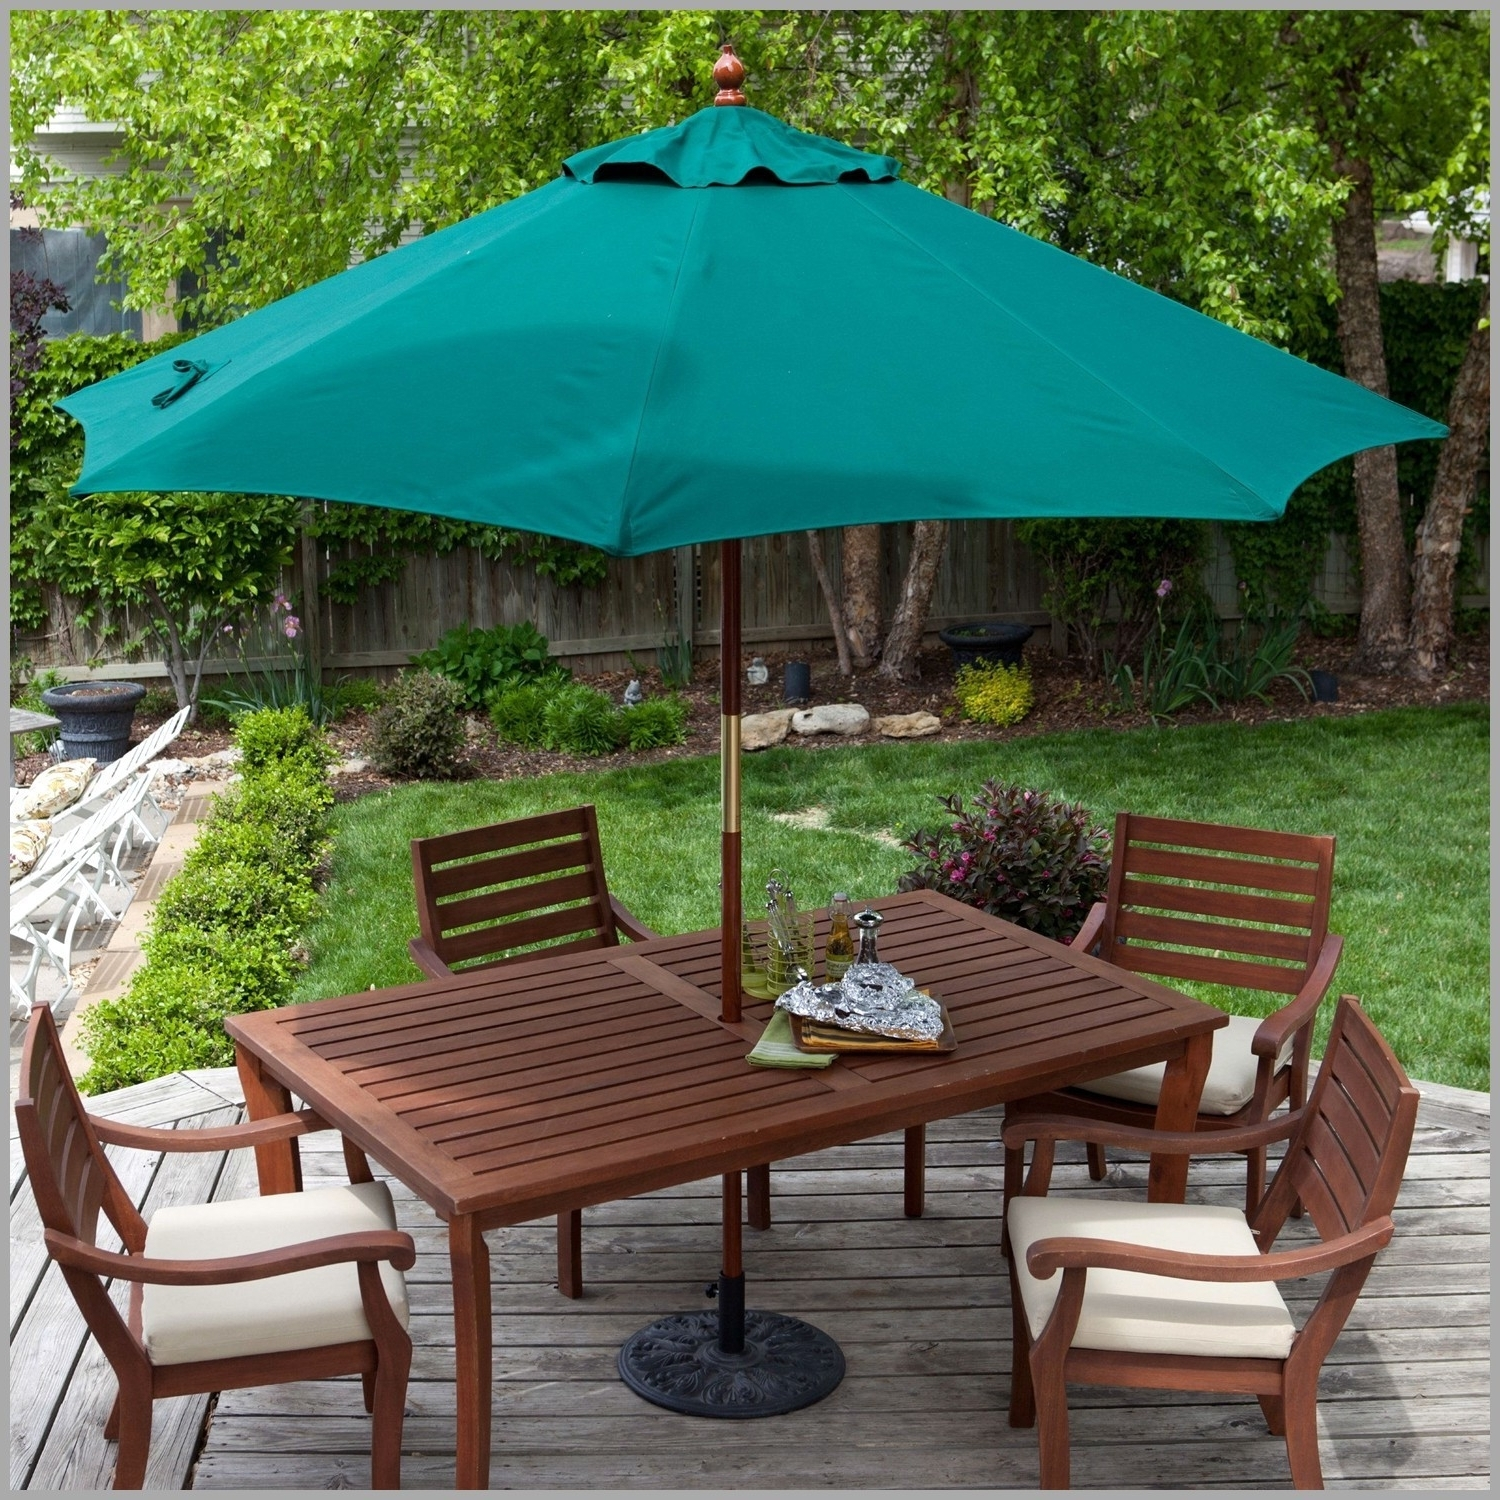 8 Ft Patio Umbrella Best Of Cheap Patio Umbrellas Luxury Have To In Well Known Cheap Patio Umbrellas (Gallery 17 of 20)